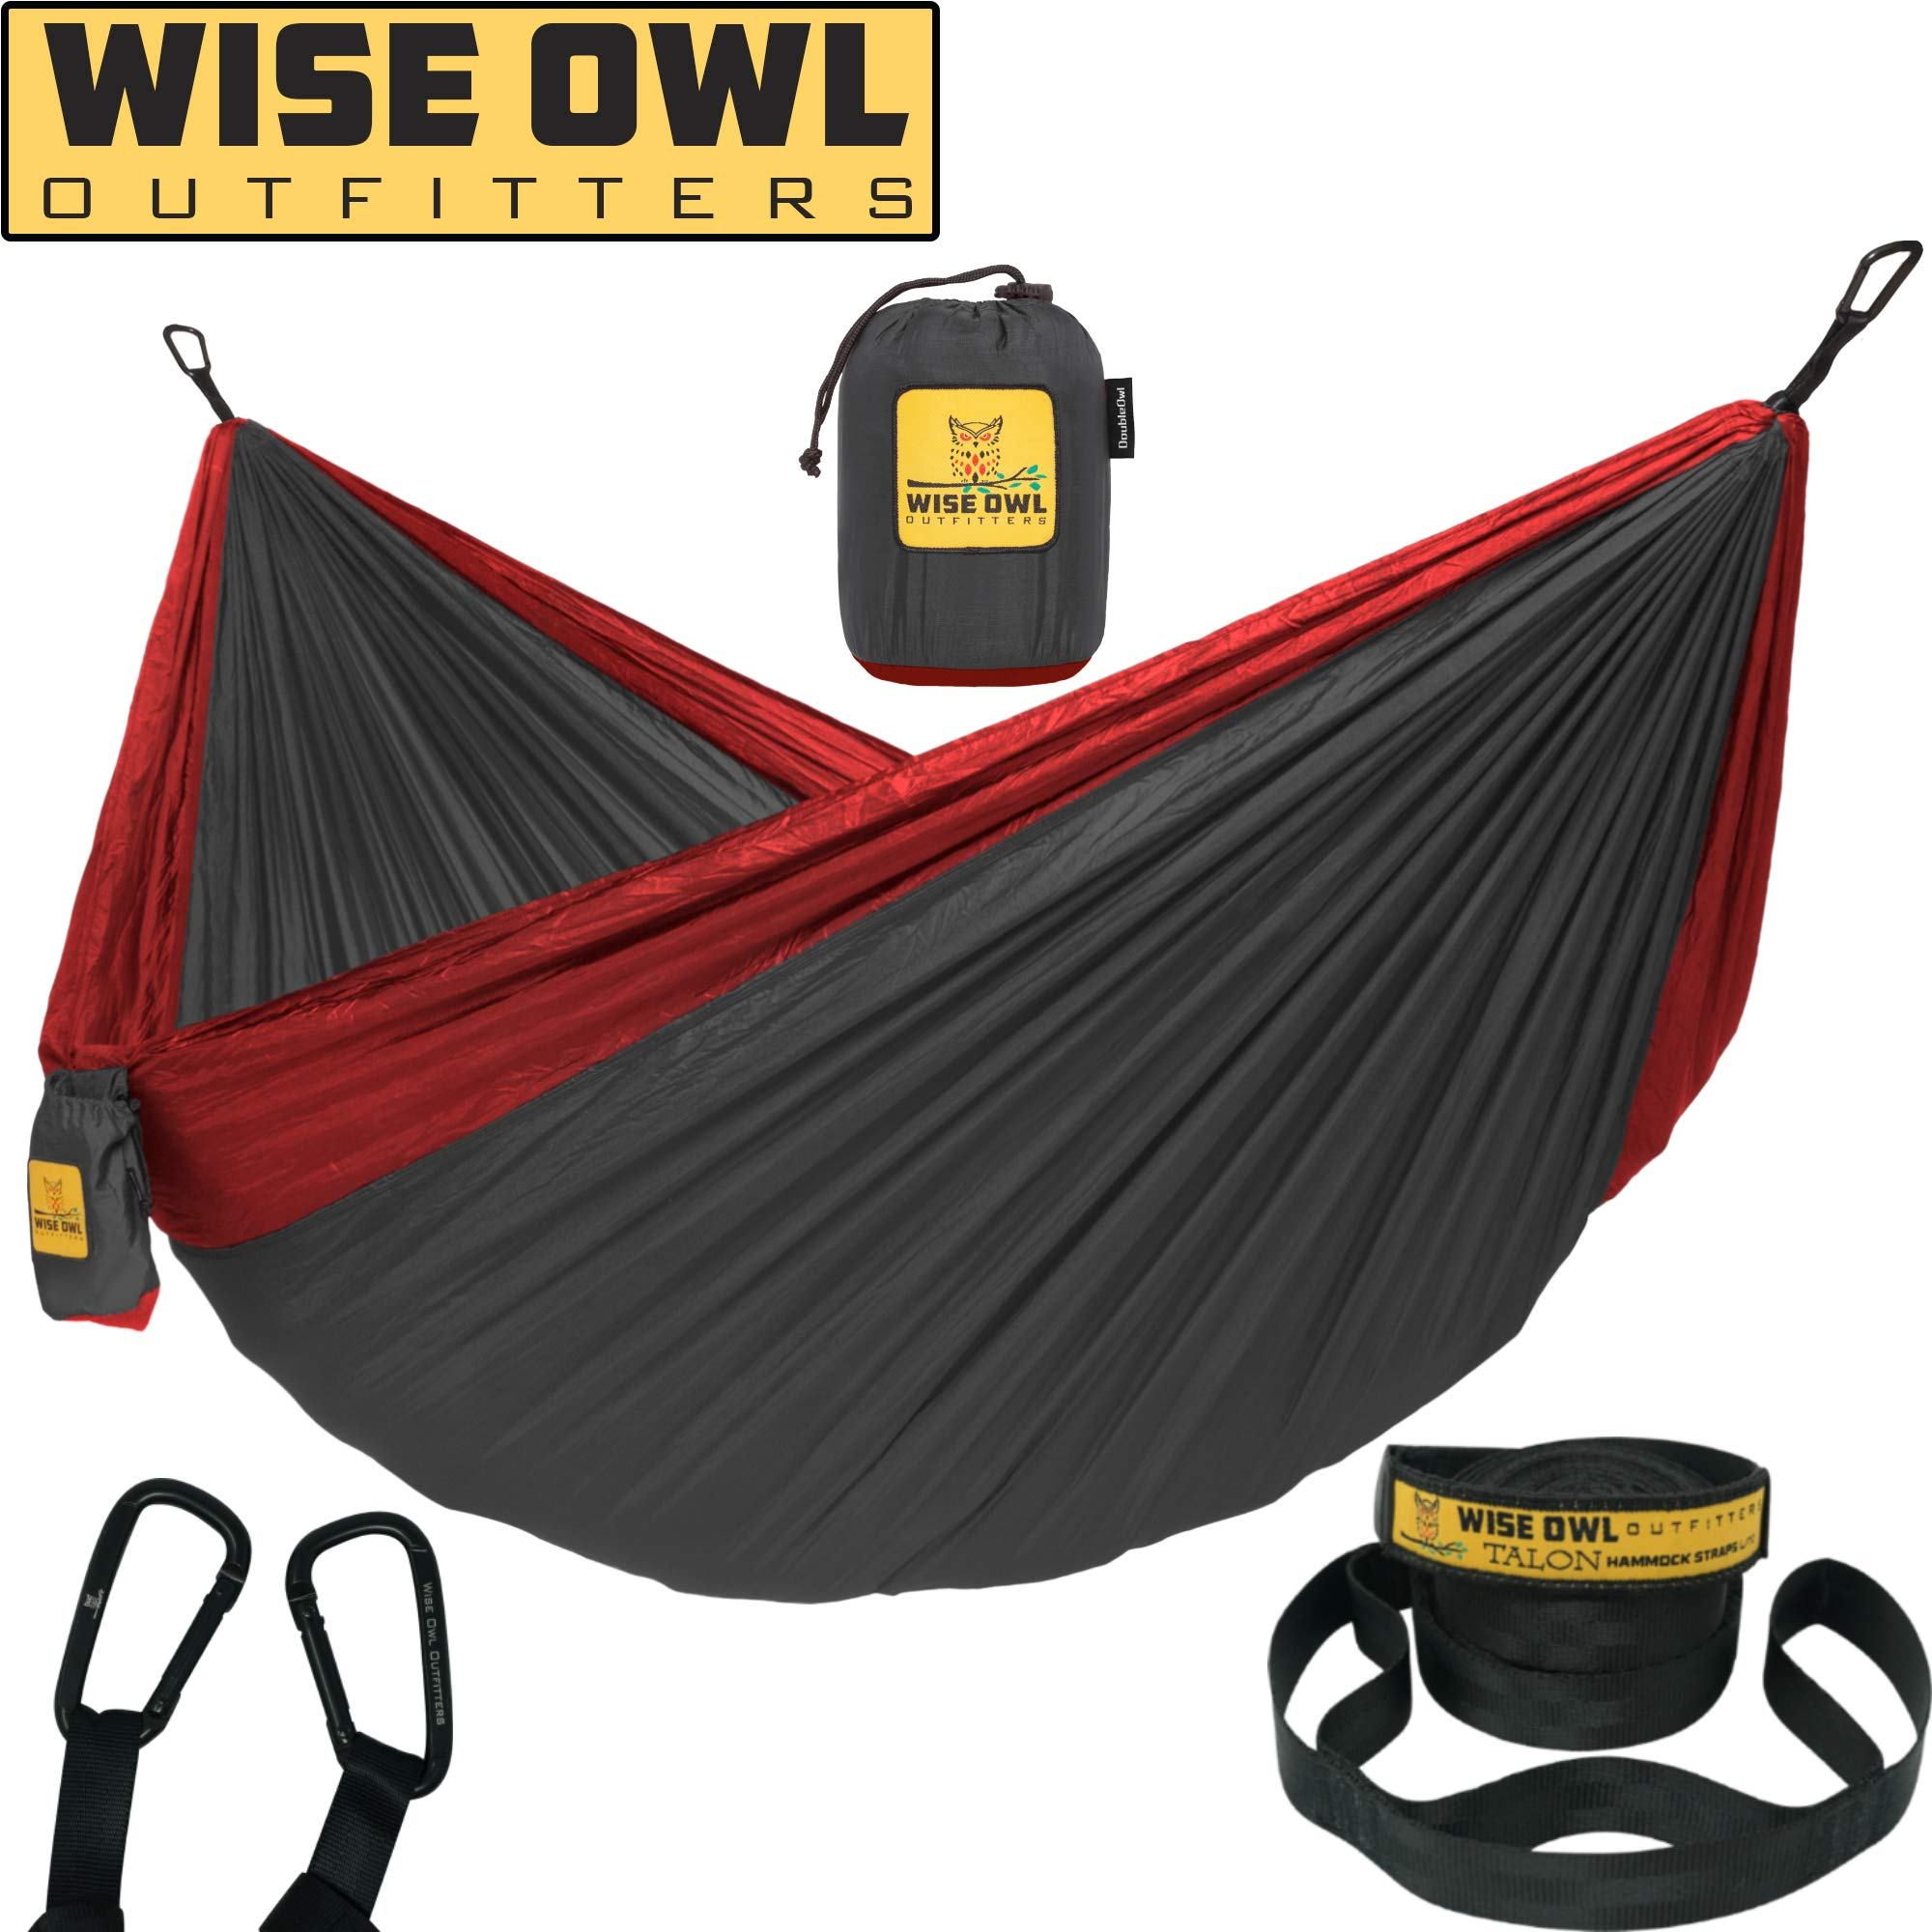 Wise Owl Outfitters Hammock Camping Double & Single with Tree Straps - USA Based Hammocks Brand Gear, Indoor Outdoor Backpacking Survival & Travel, Portable DO Ch/Red